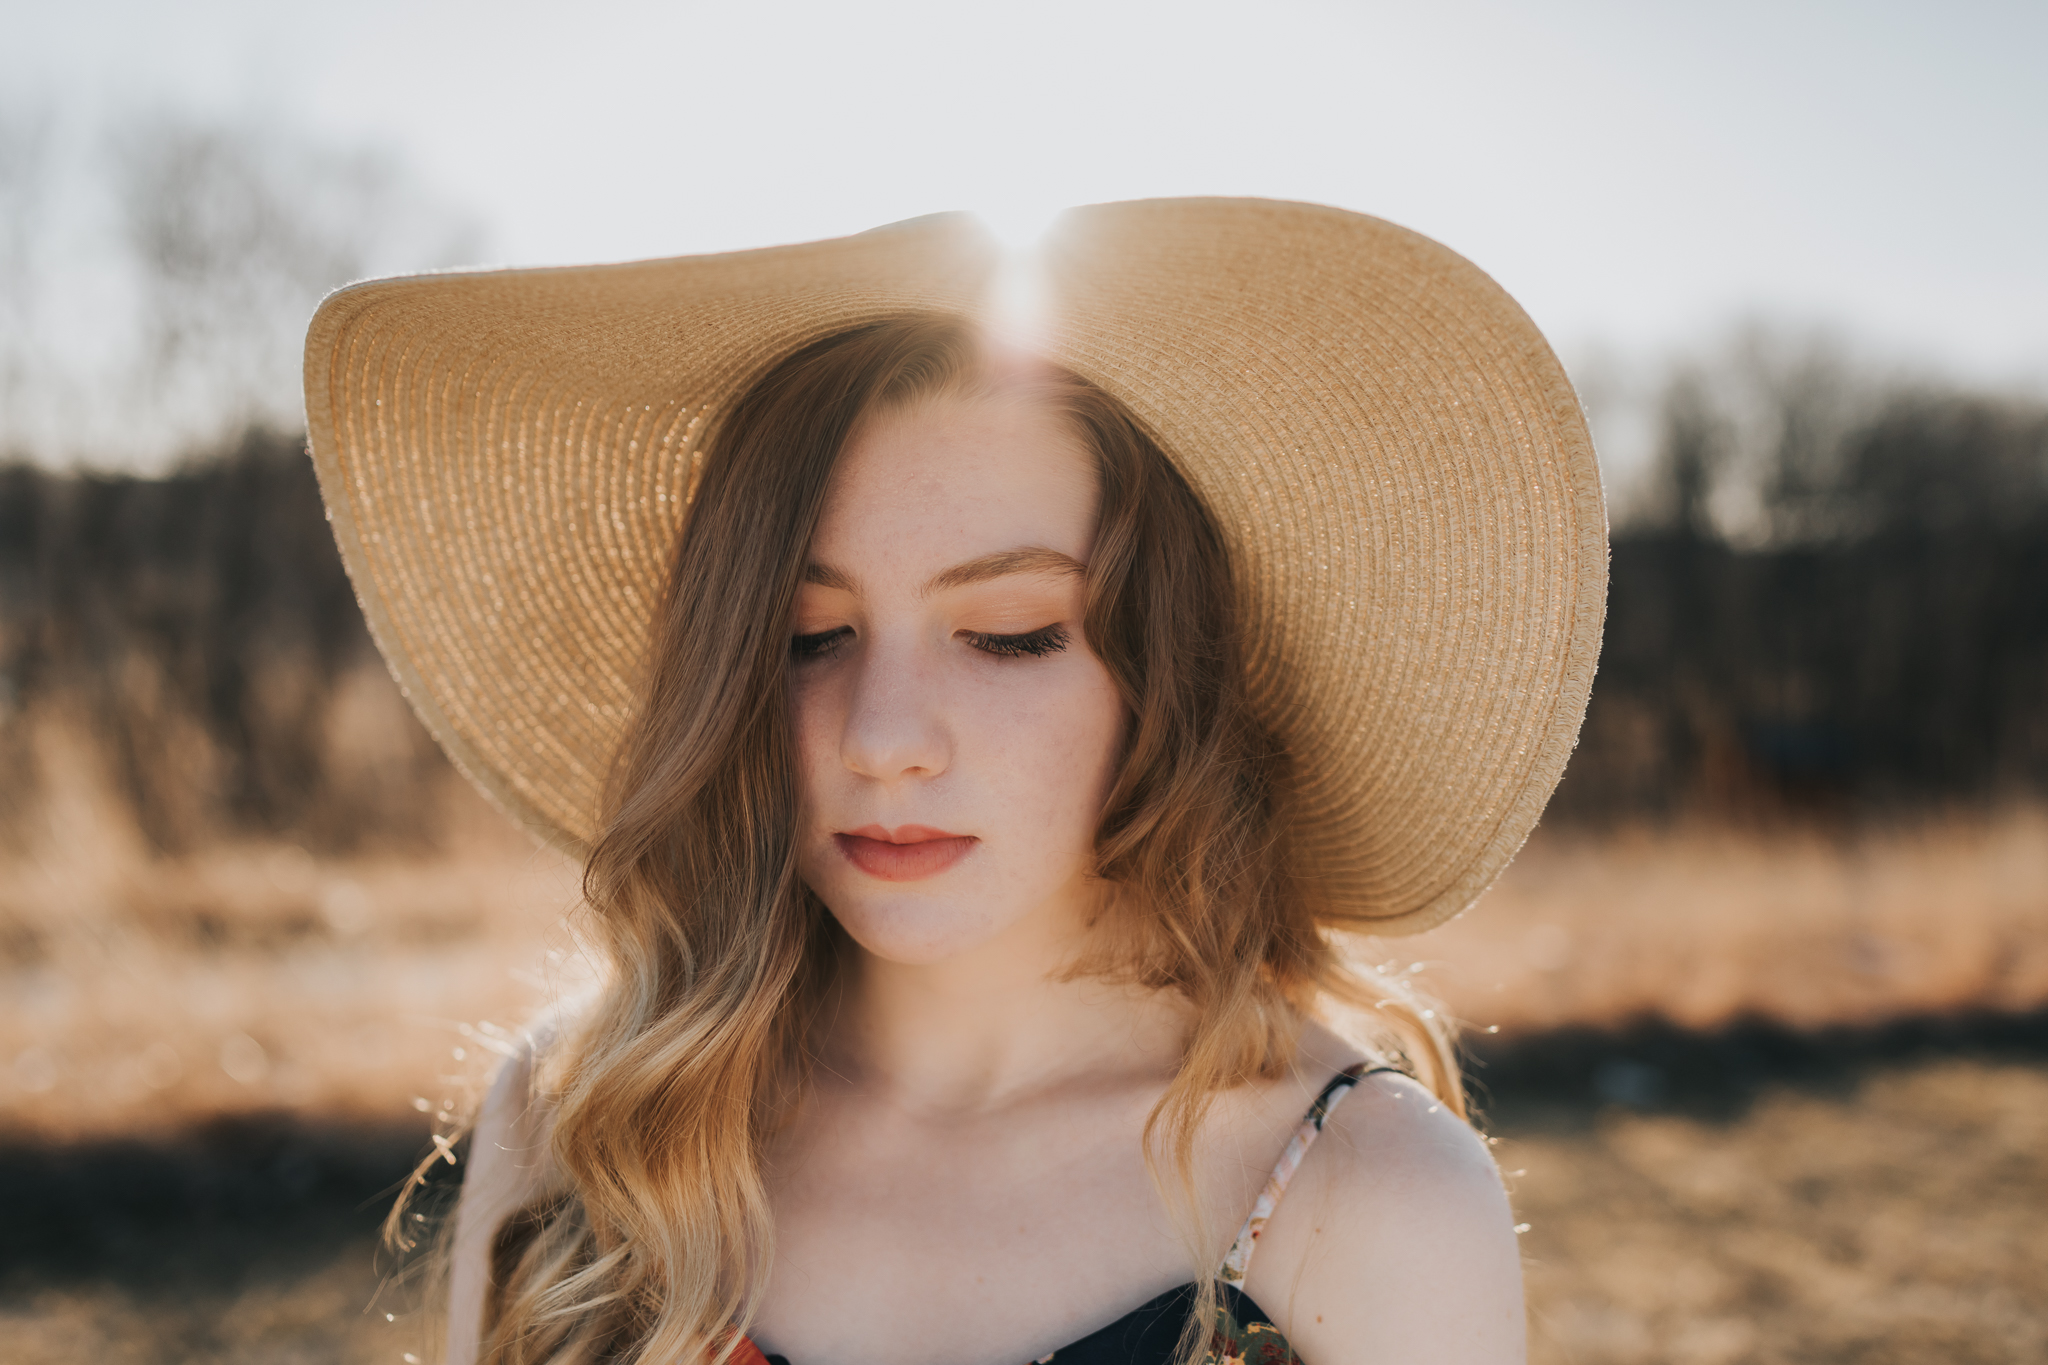 teenager girl wearing a hat with the sun shining through it - Twin Cities Senior Photographer